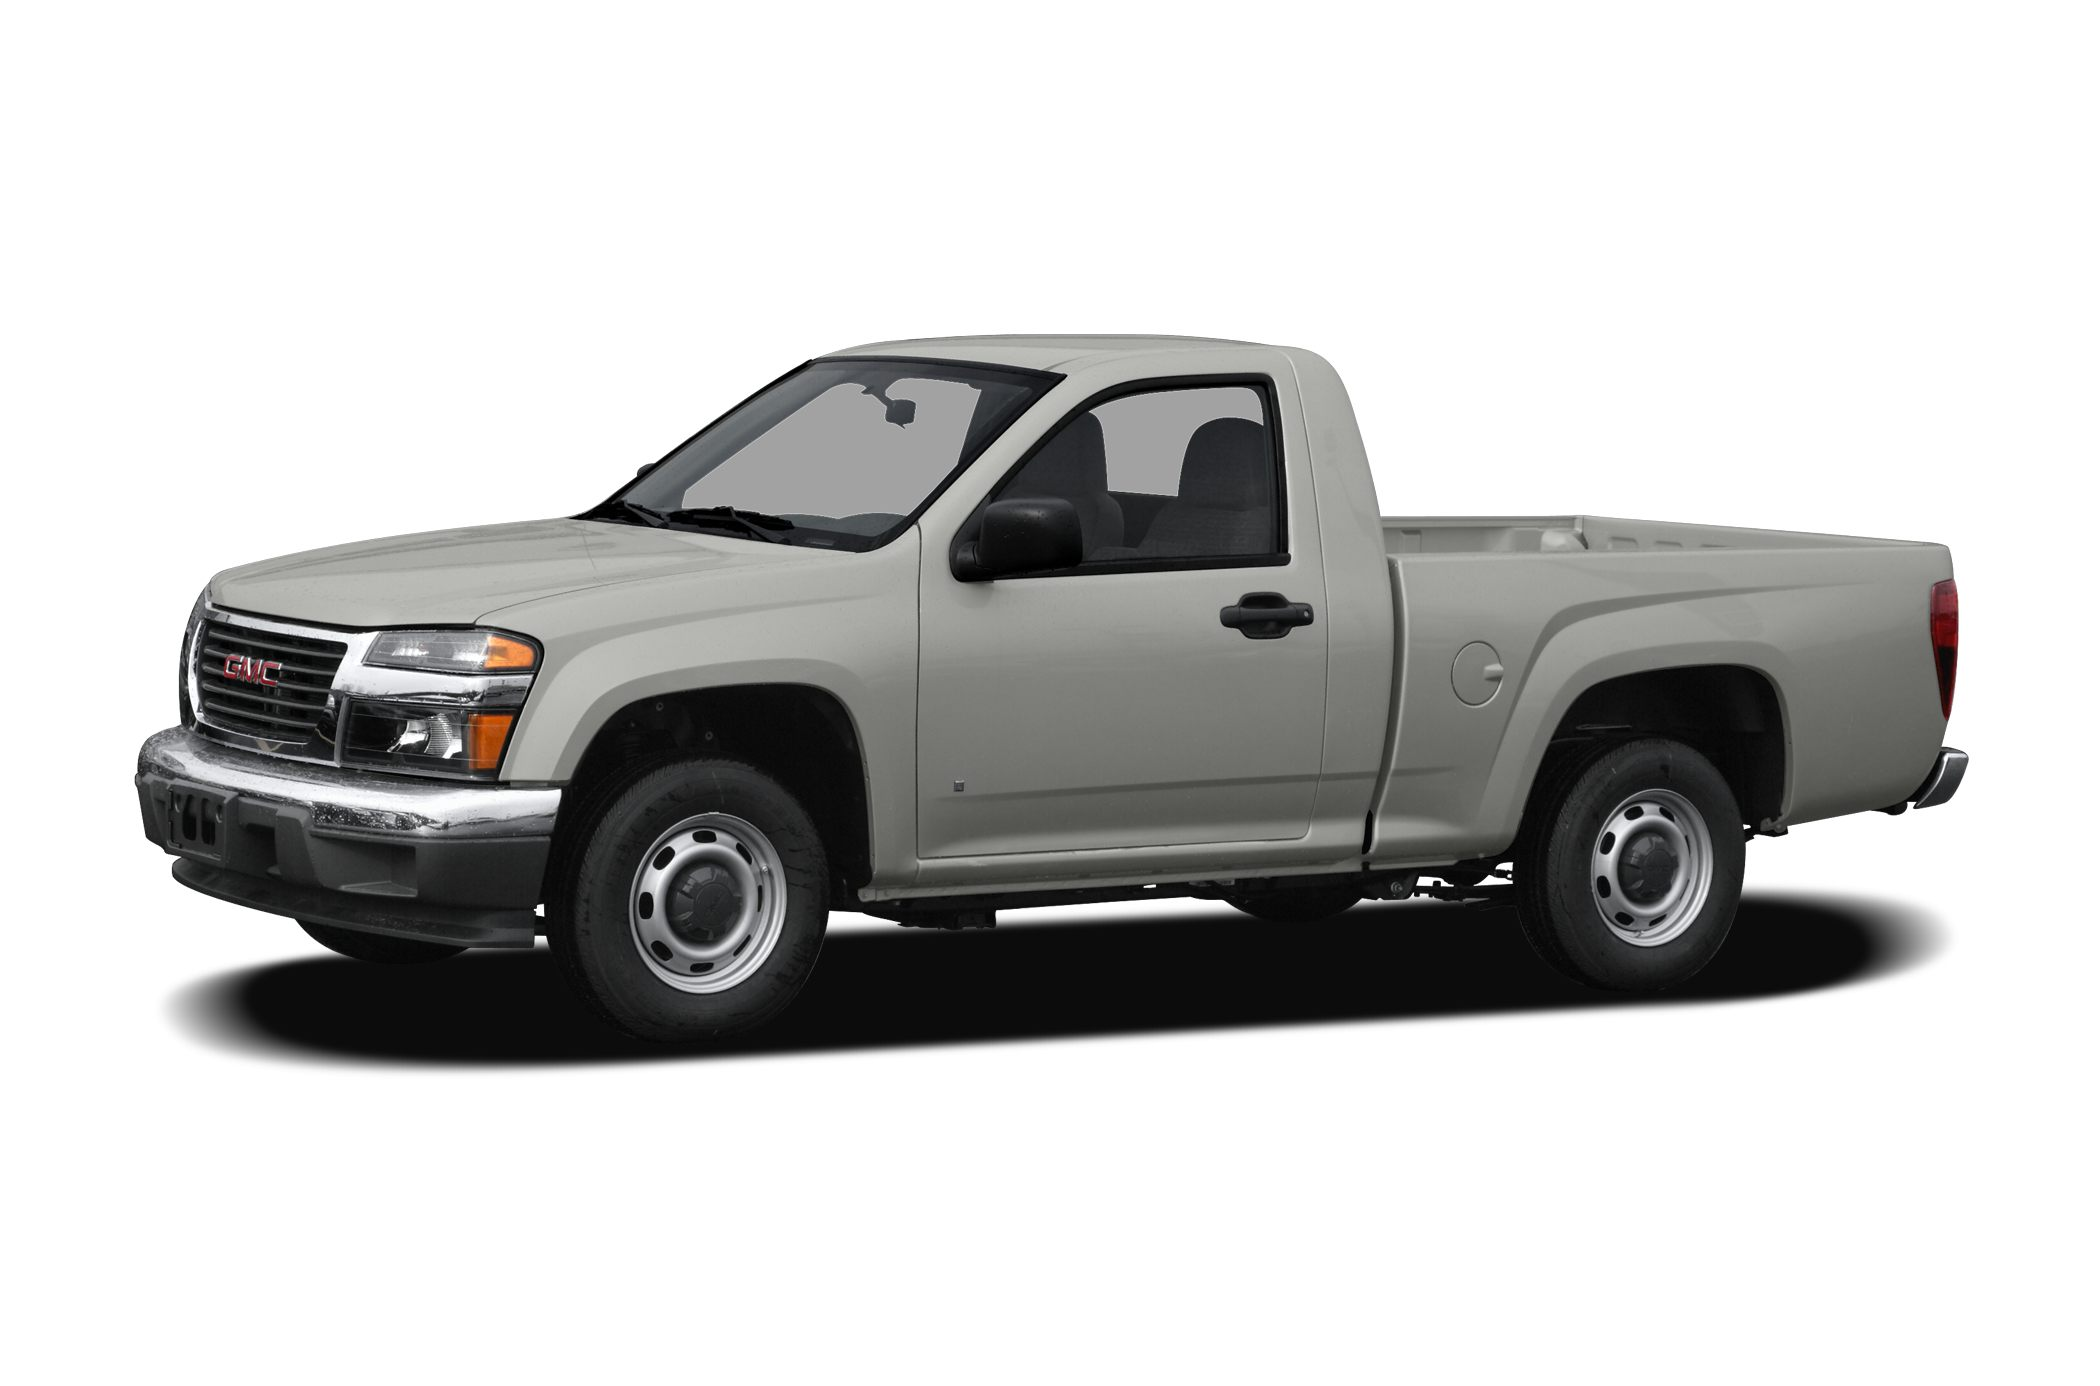 2008 GMC Canyon SLE Crew Cab Pickup for sale in Malvern for $0 with 116,607 miles